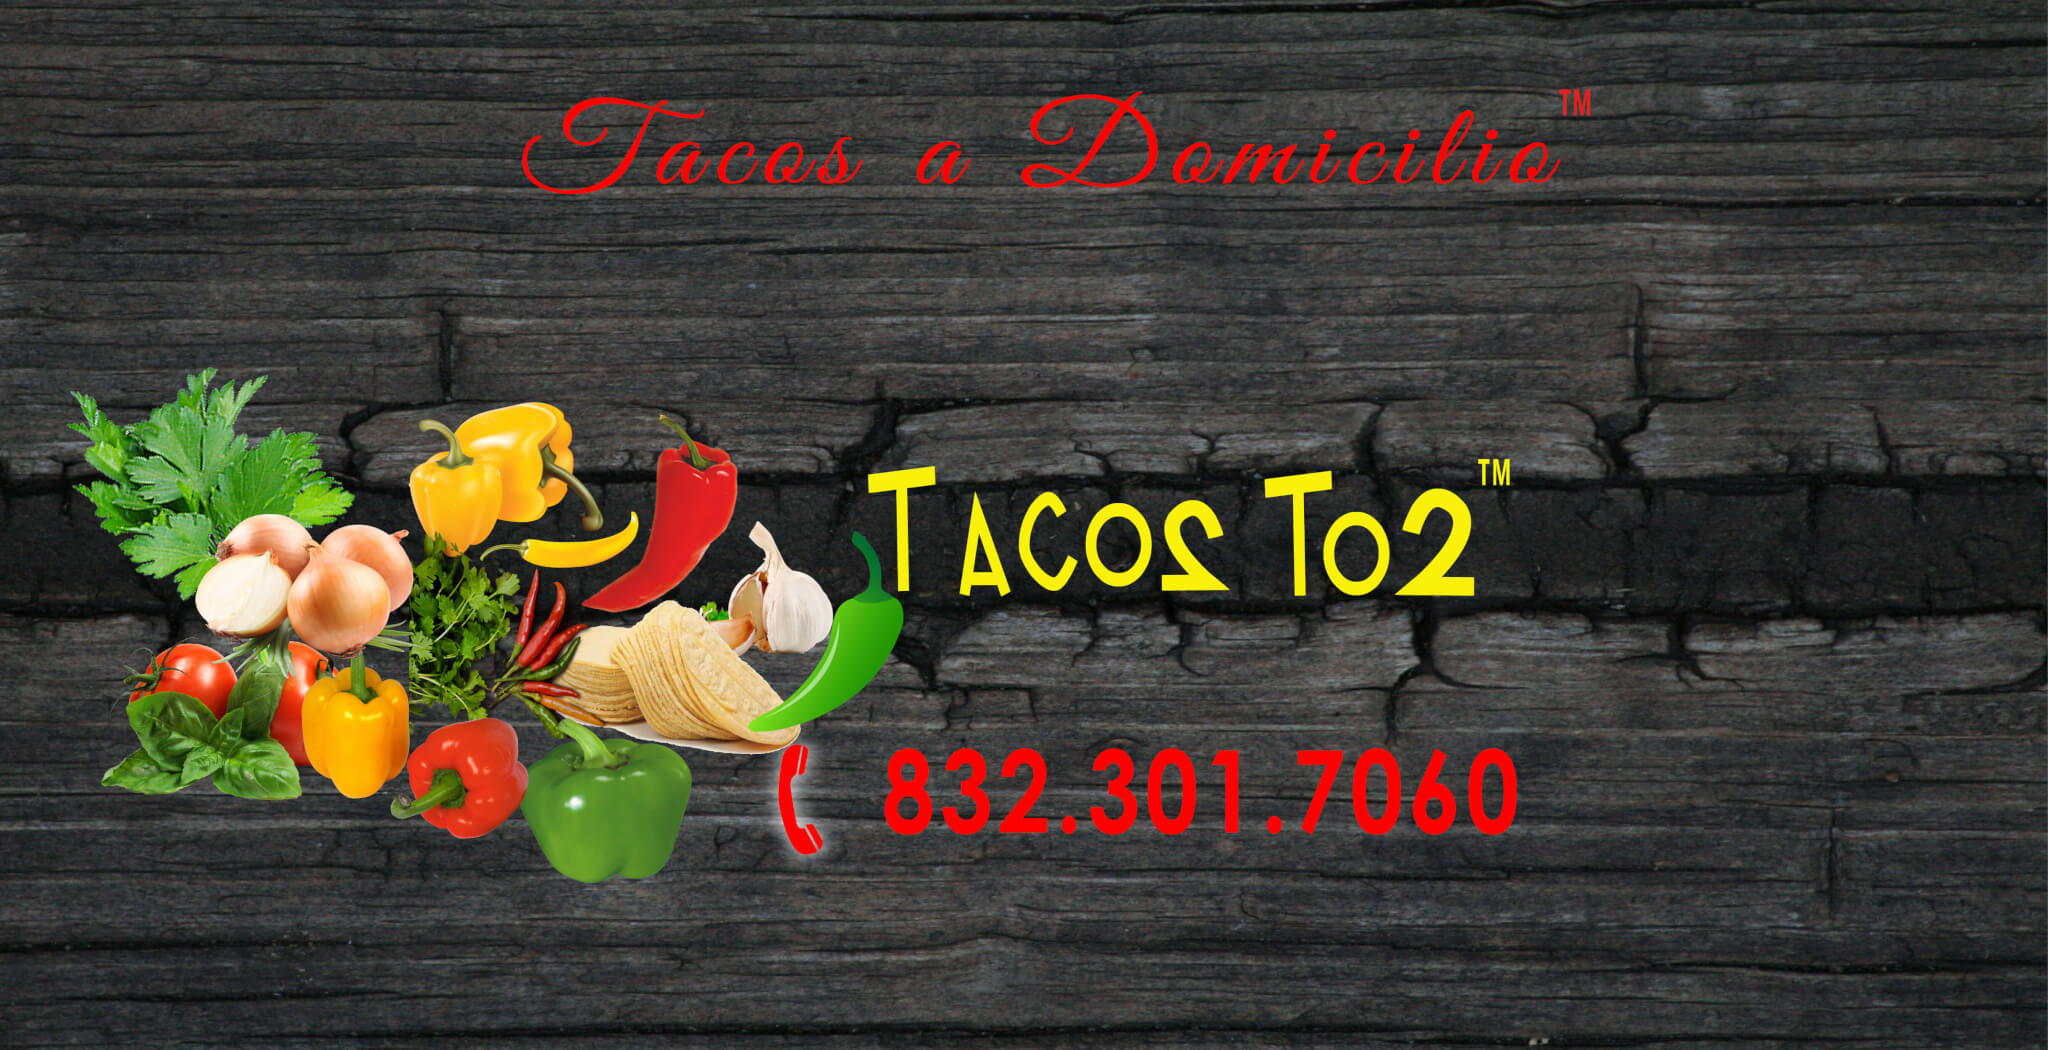 Tacos a Domicilio Houston